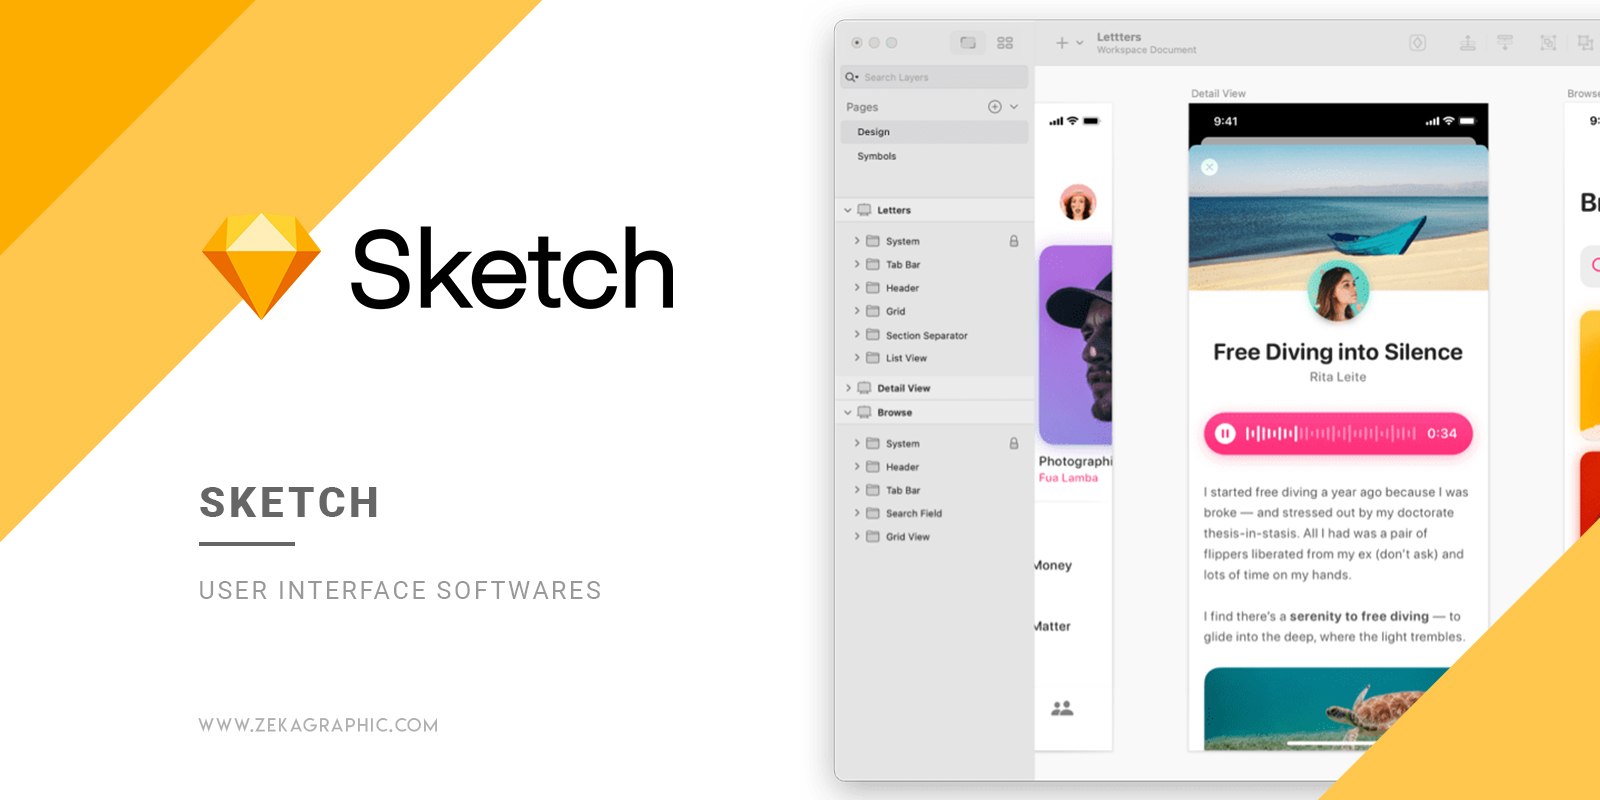 Sketch User Interface Software for Graphic Design